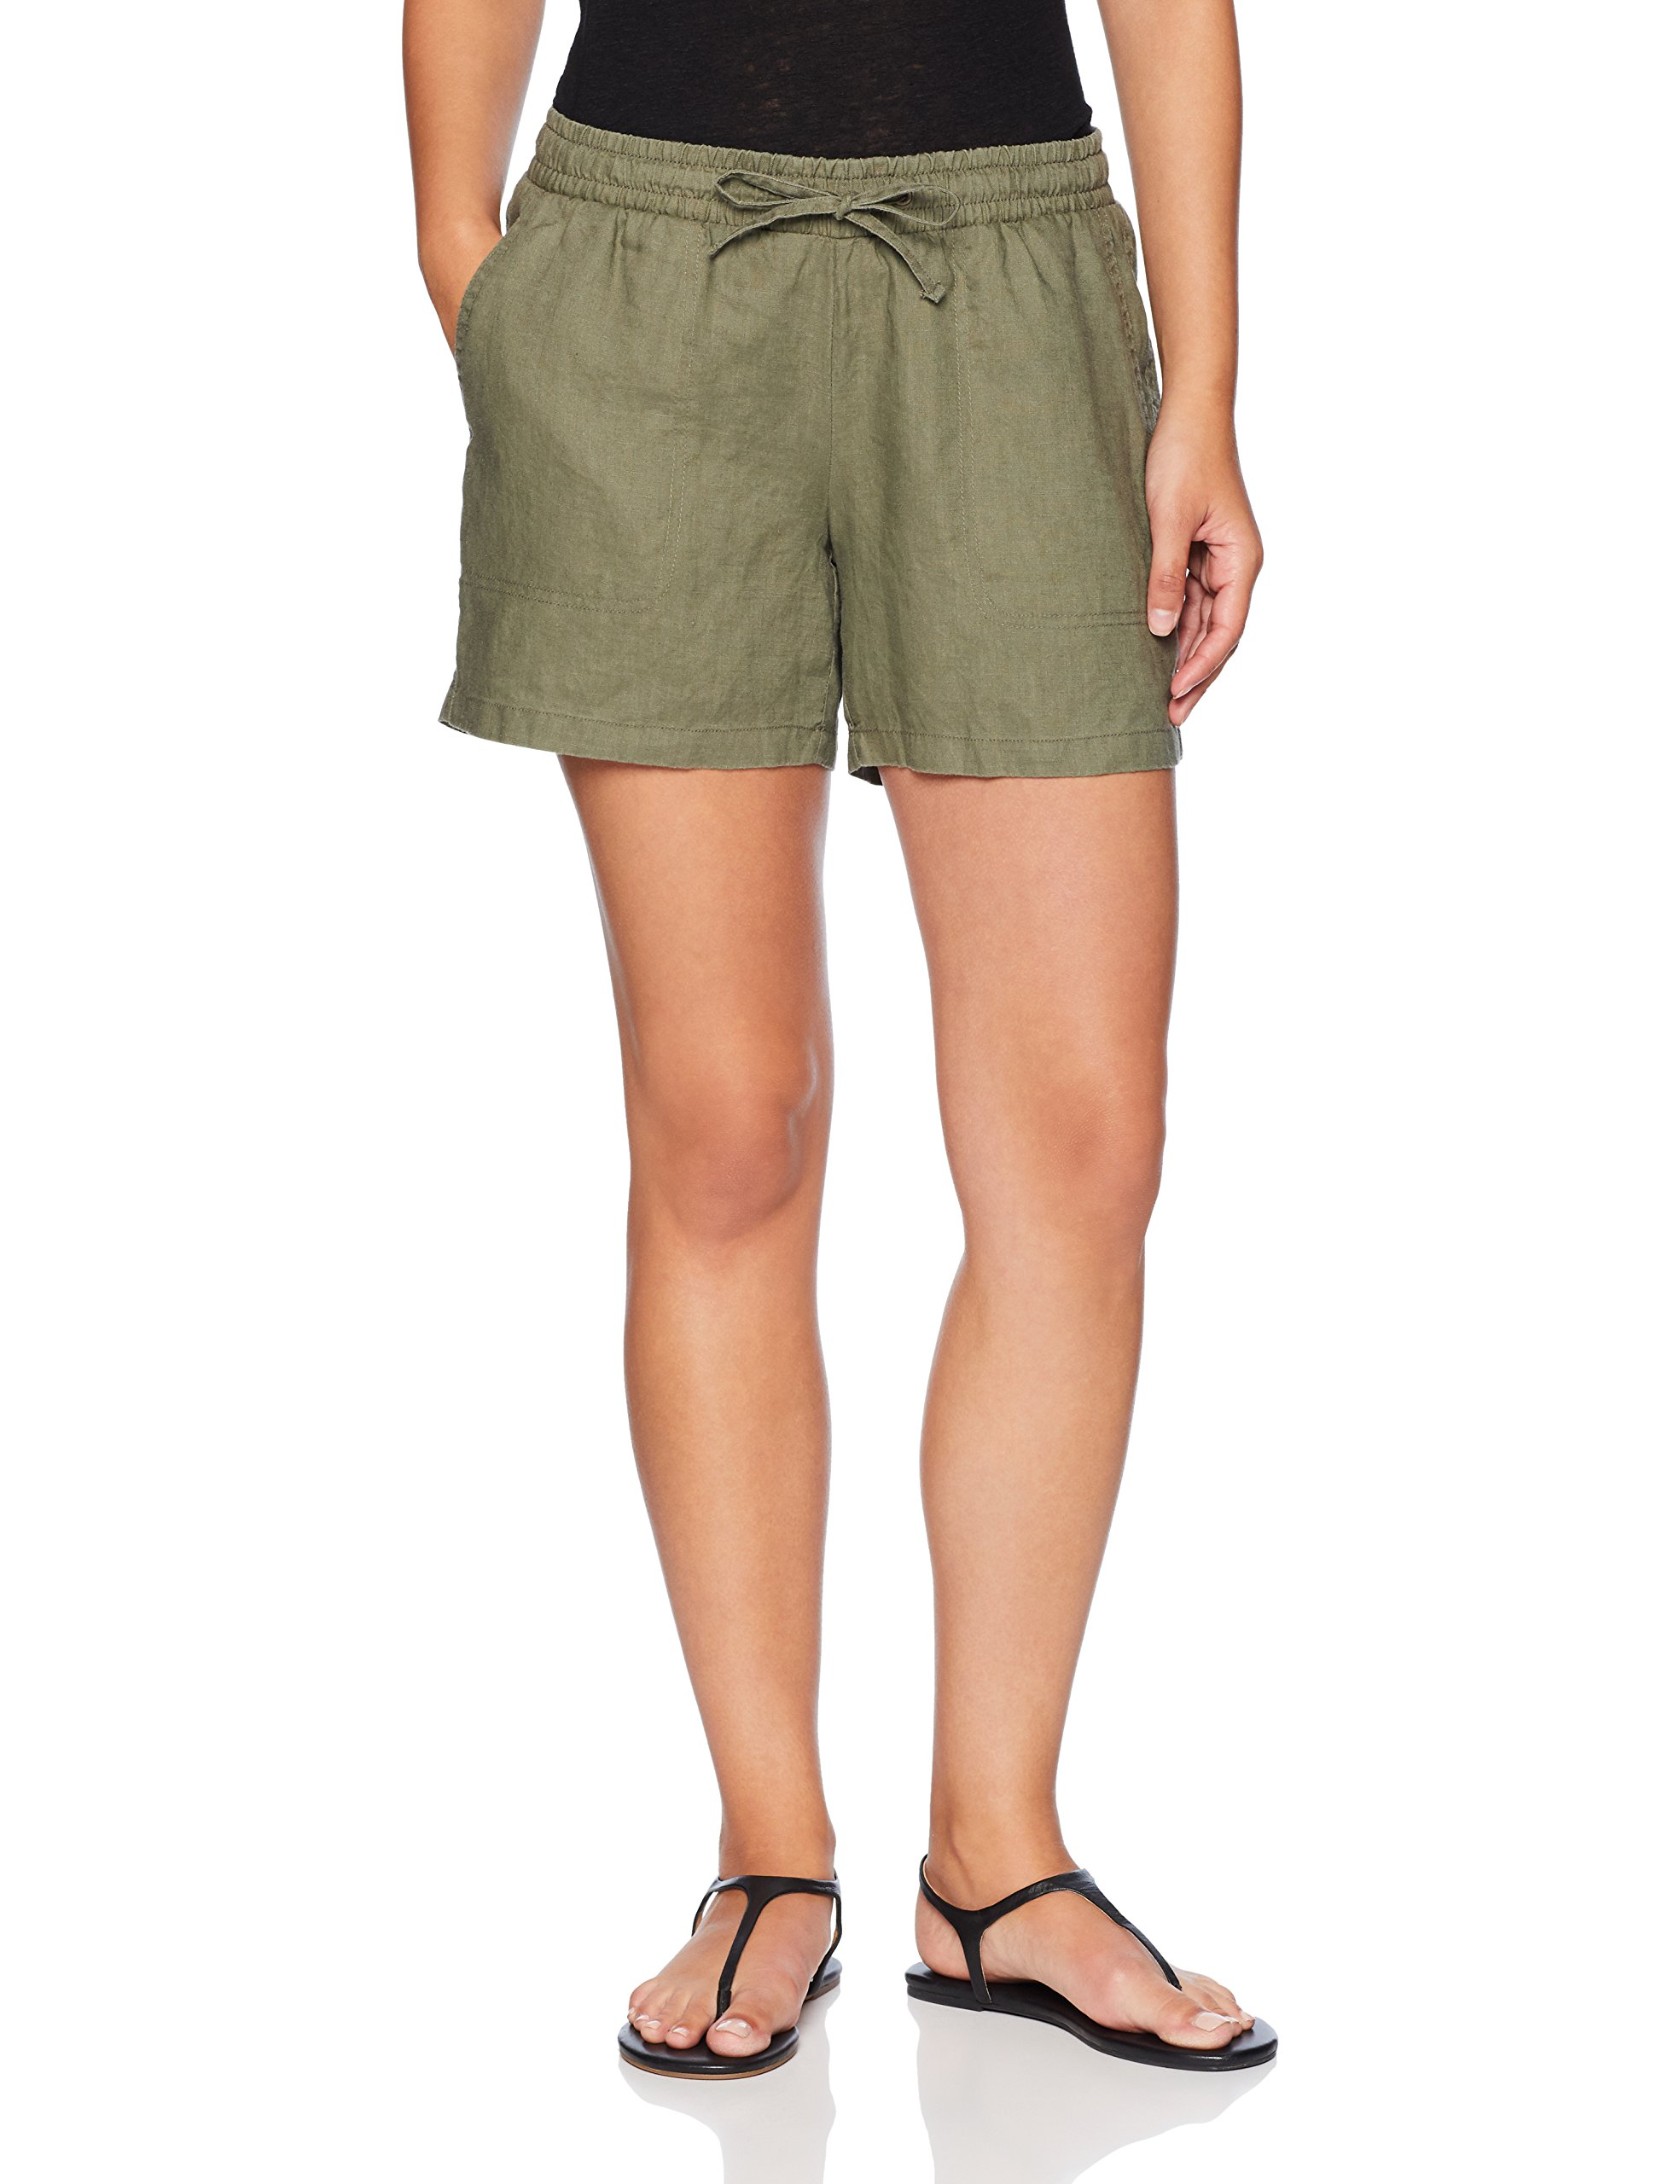 Amazon Essentials Women's 5'' Drawstring Solid Linen Short, Olive, Small